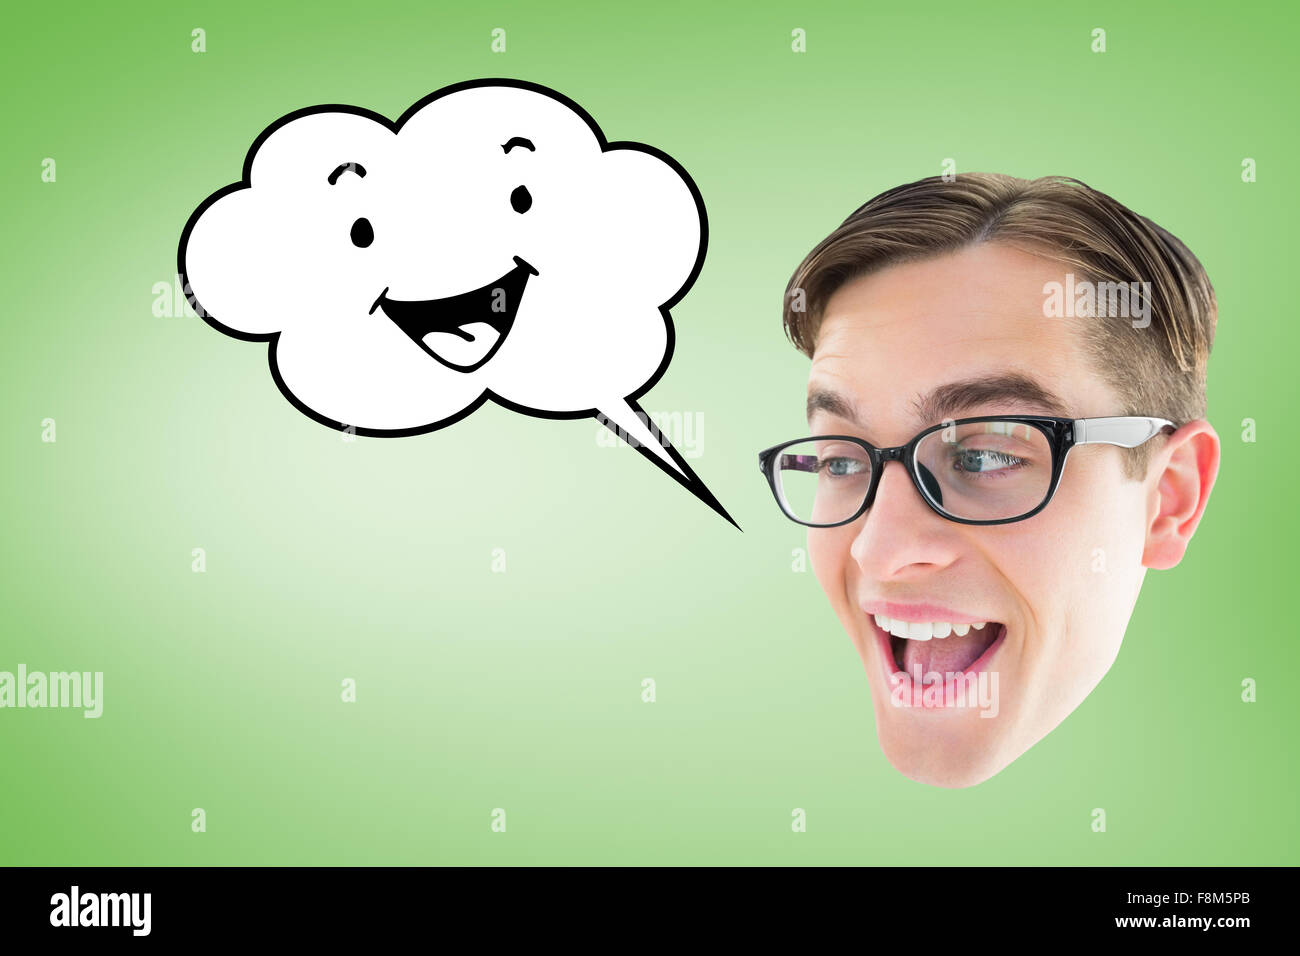 Composite image of nerd smiling - Stock Image